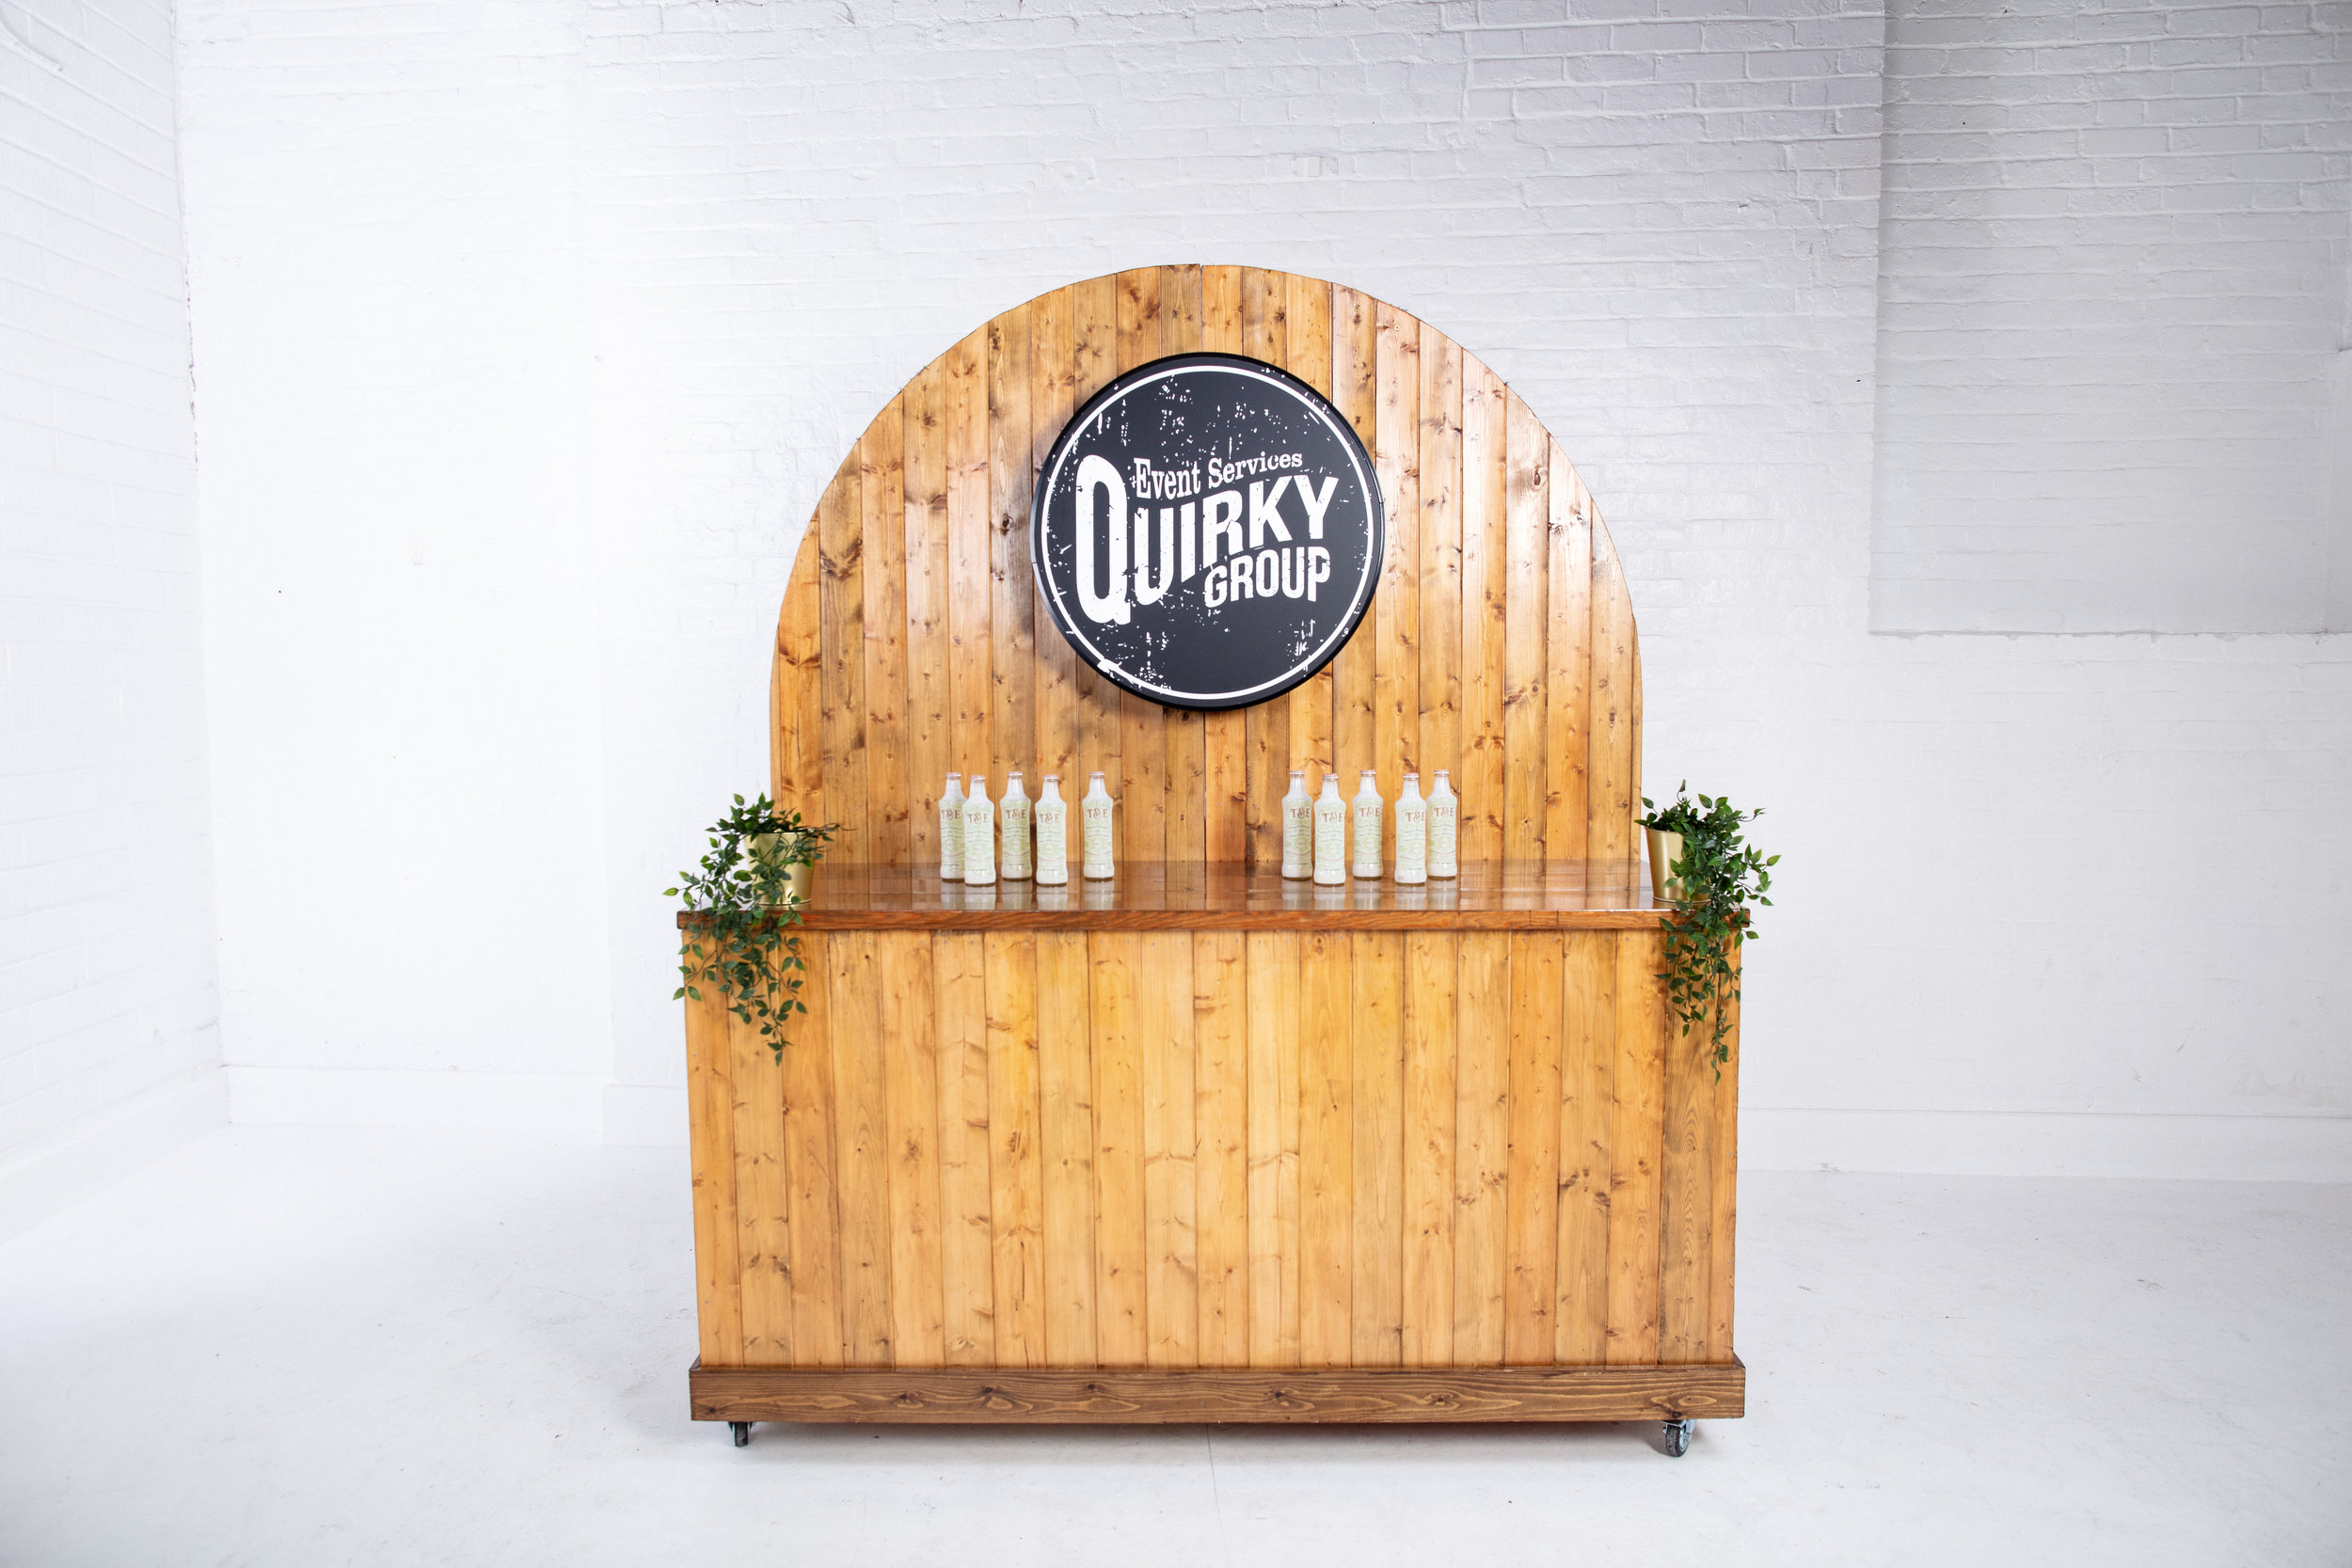 Quirky Group Six Foot Bar large display unit to rent